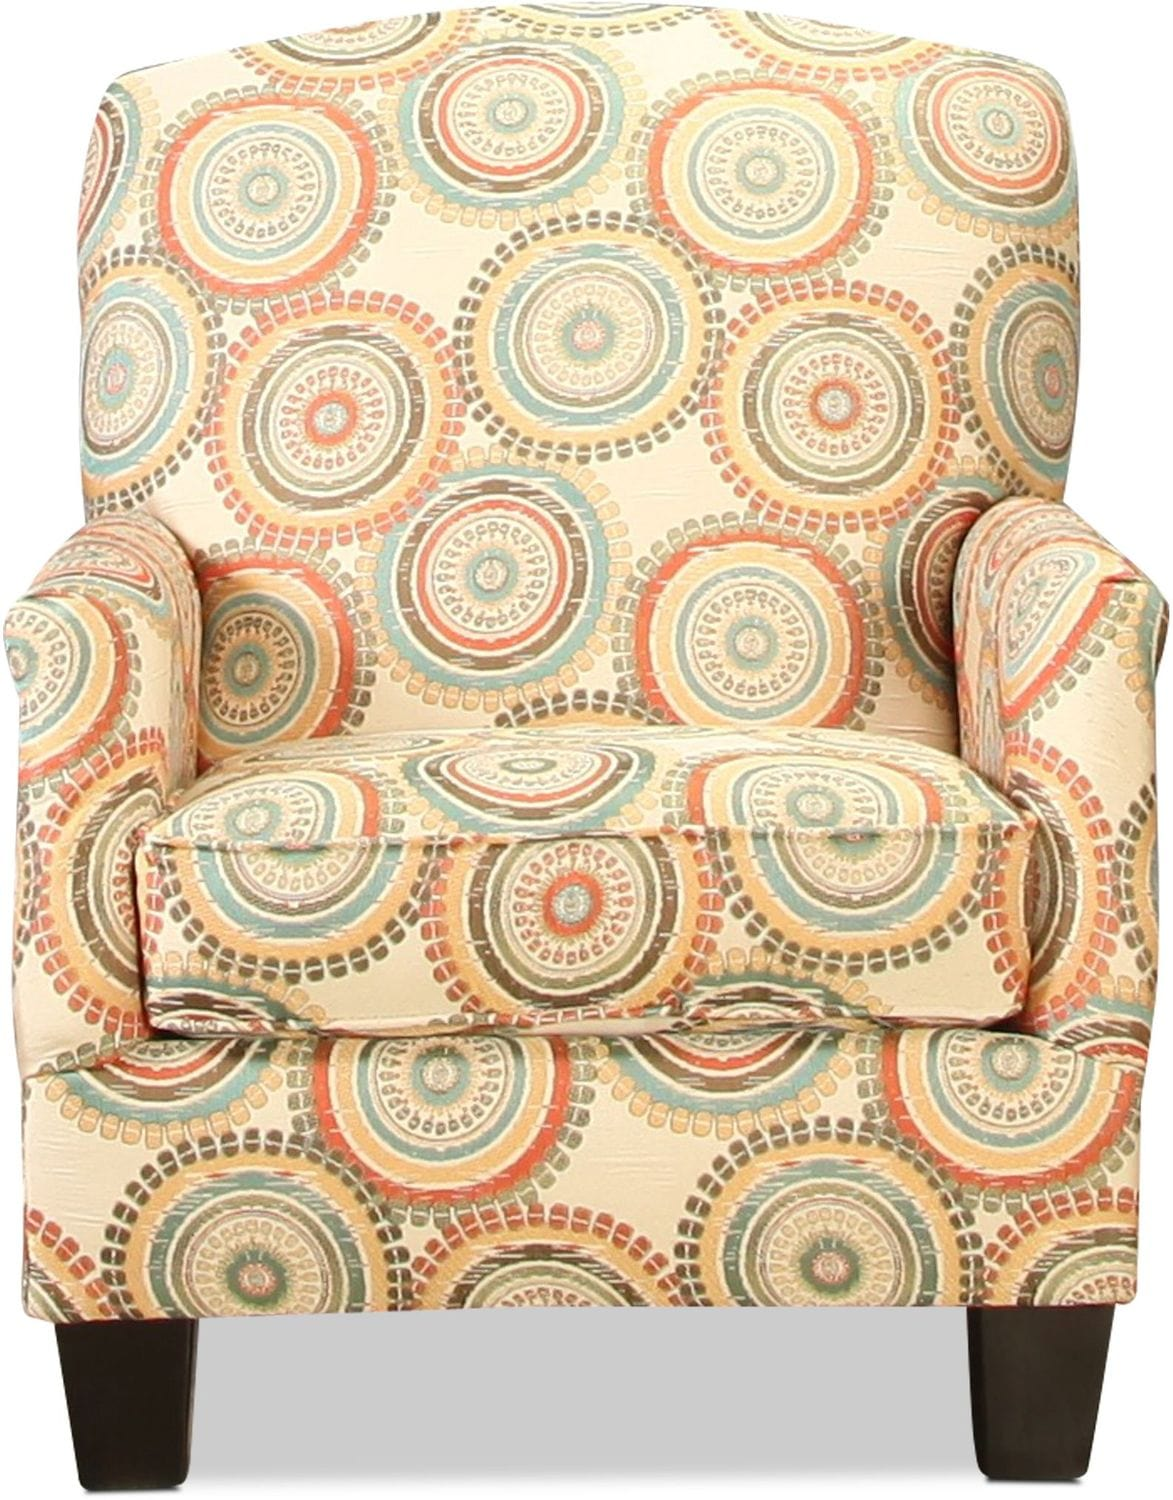 Living Room Furniture - Sanibel Accent Chair - Medallions